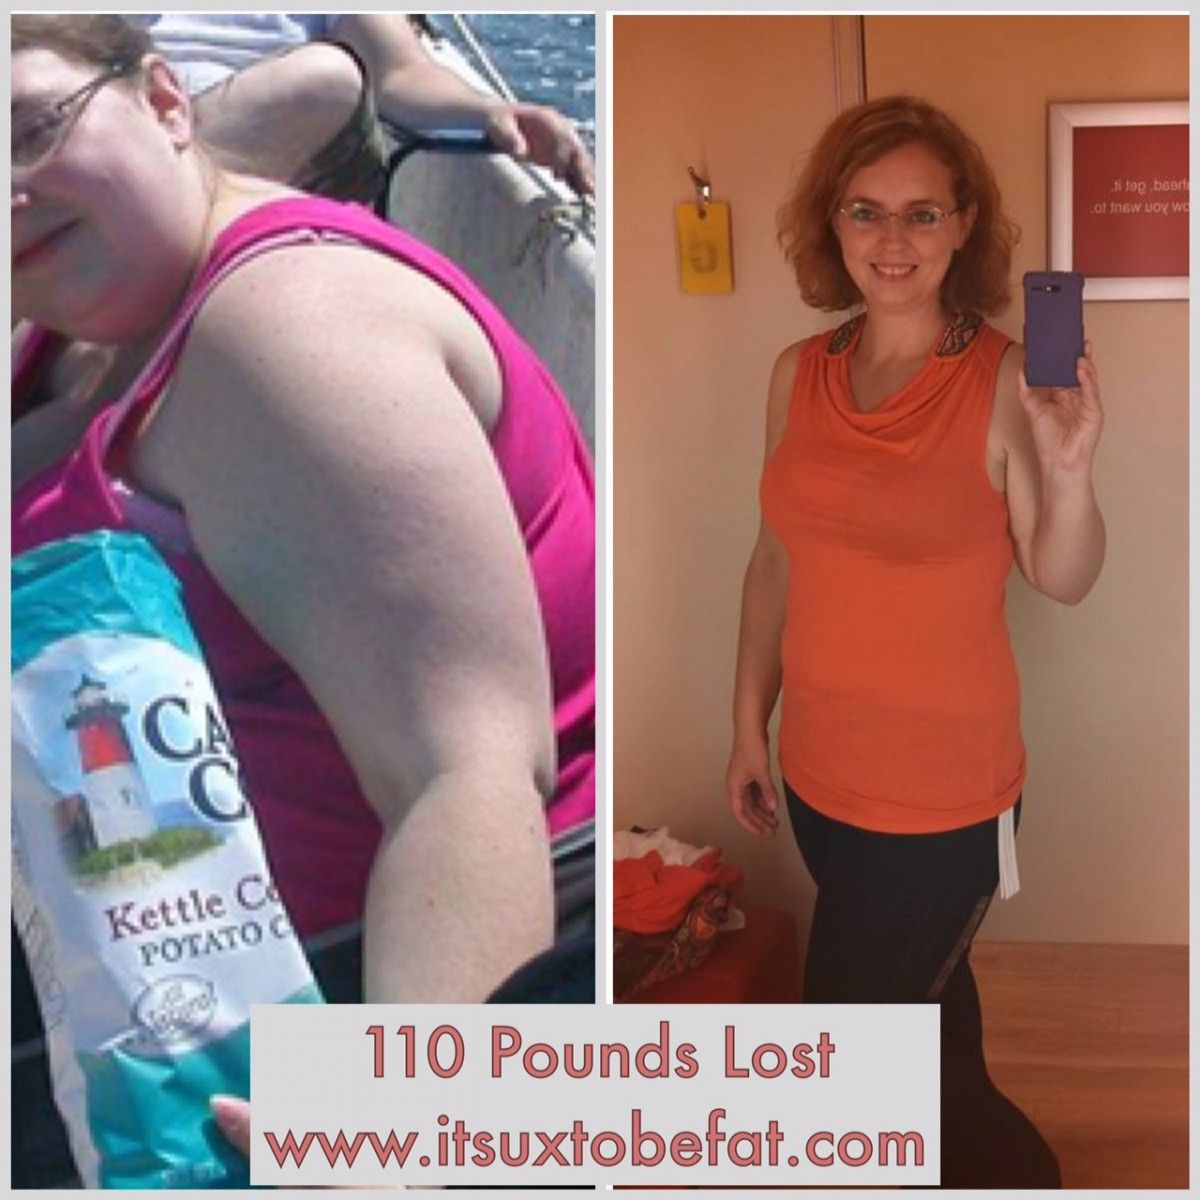 Watch How I Lost 110 Pounds And Kept It Off For 3 Years video